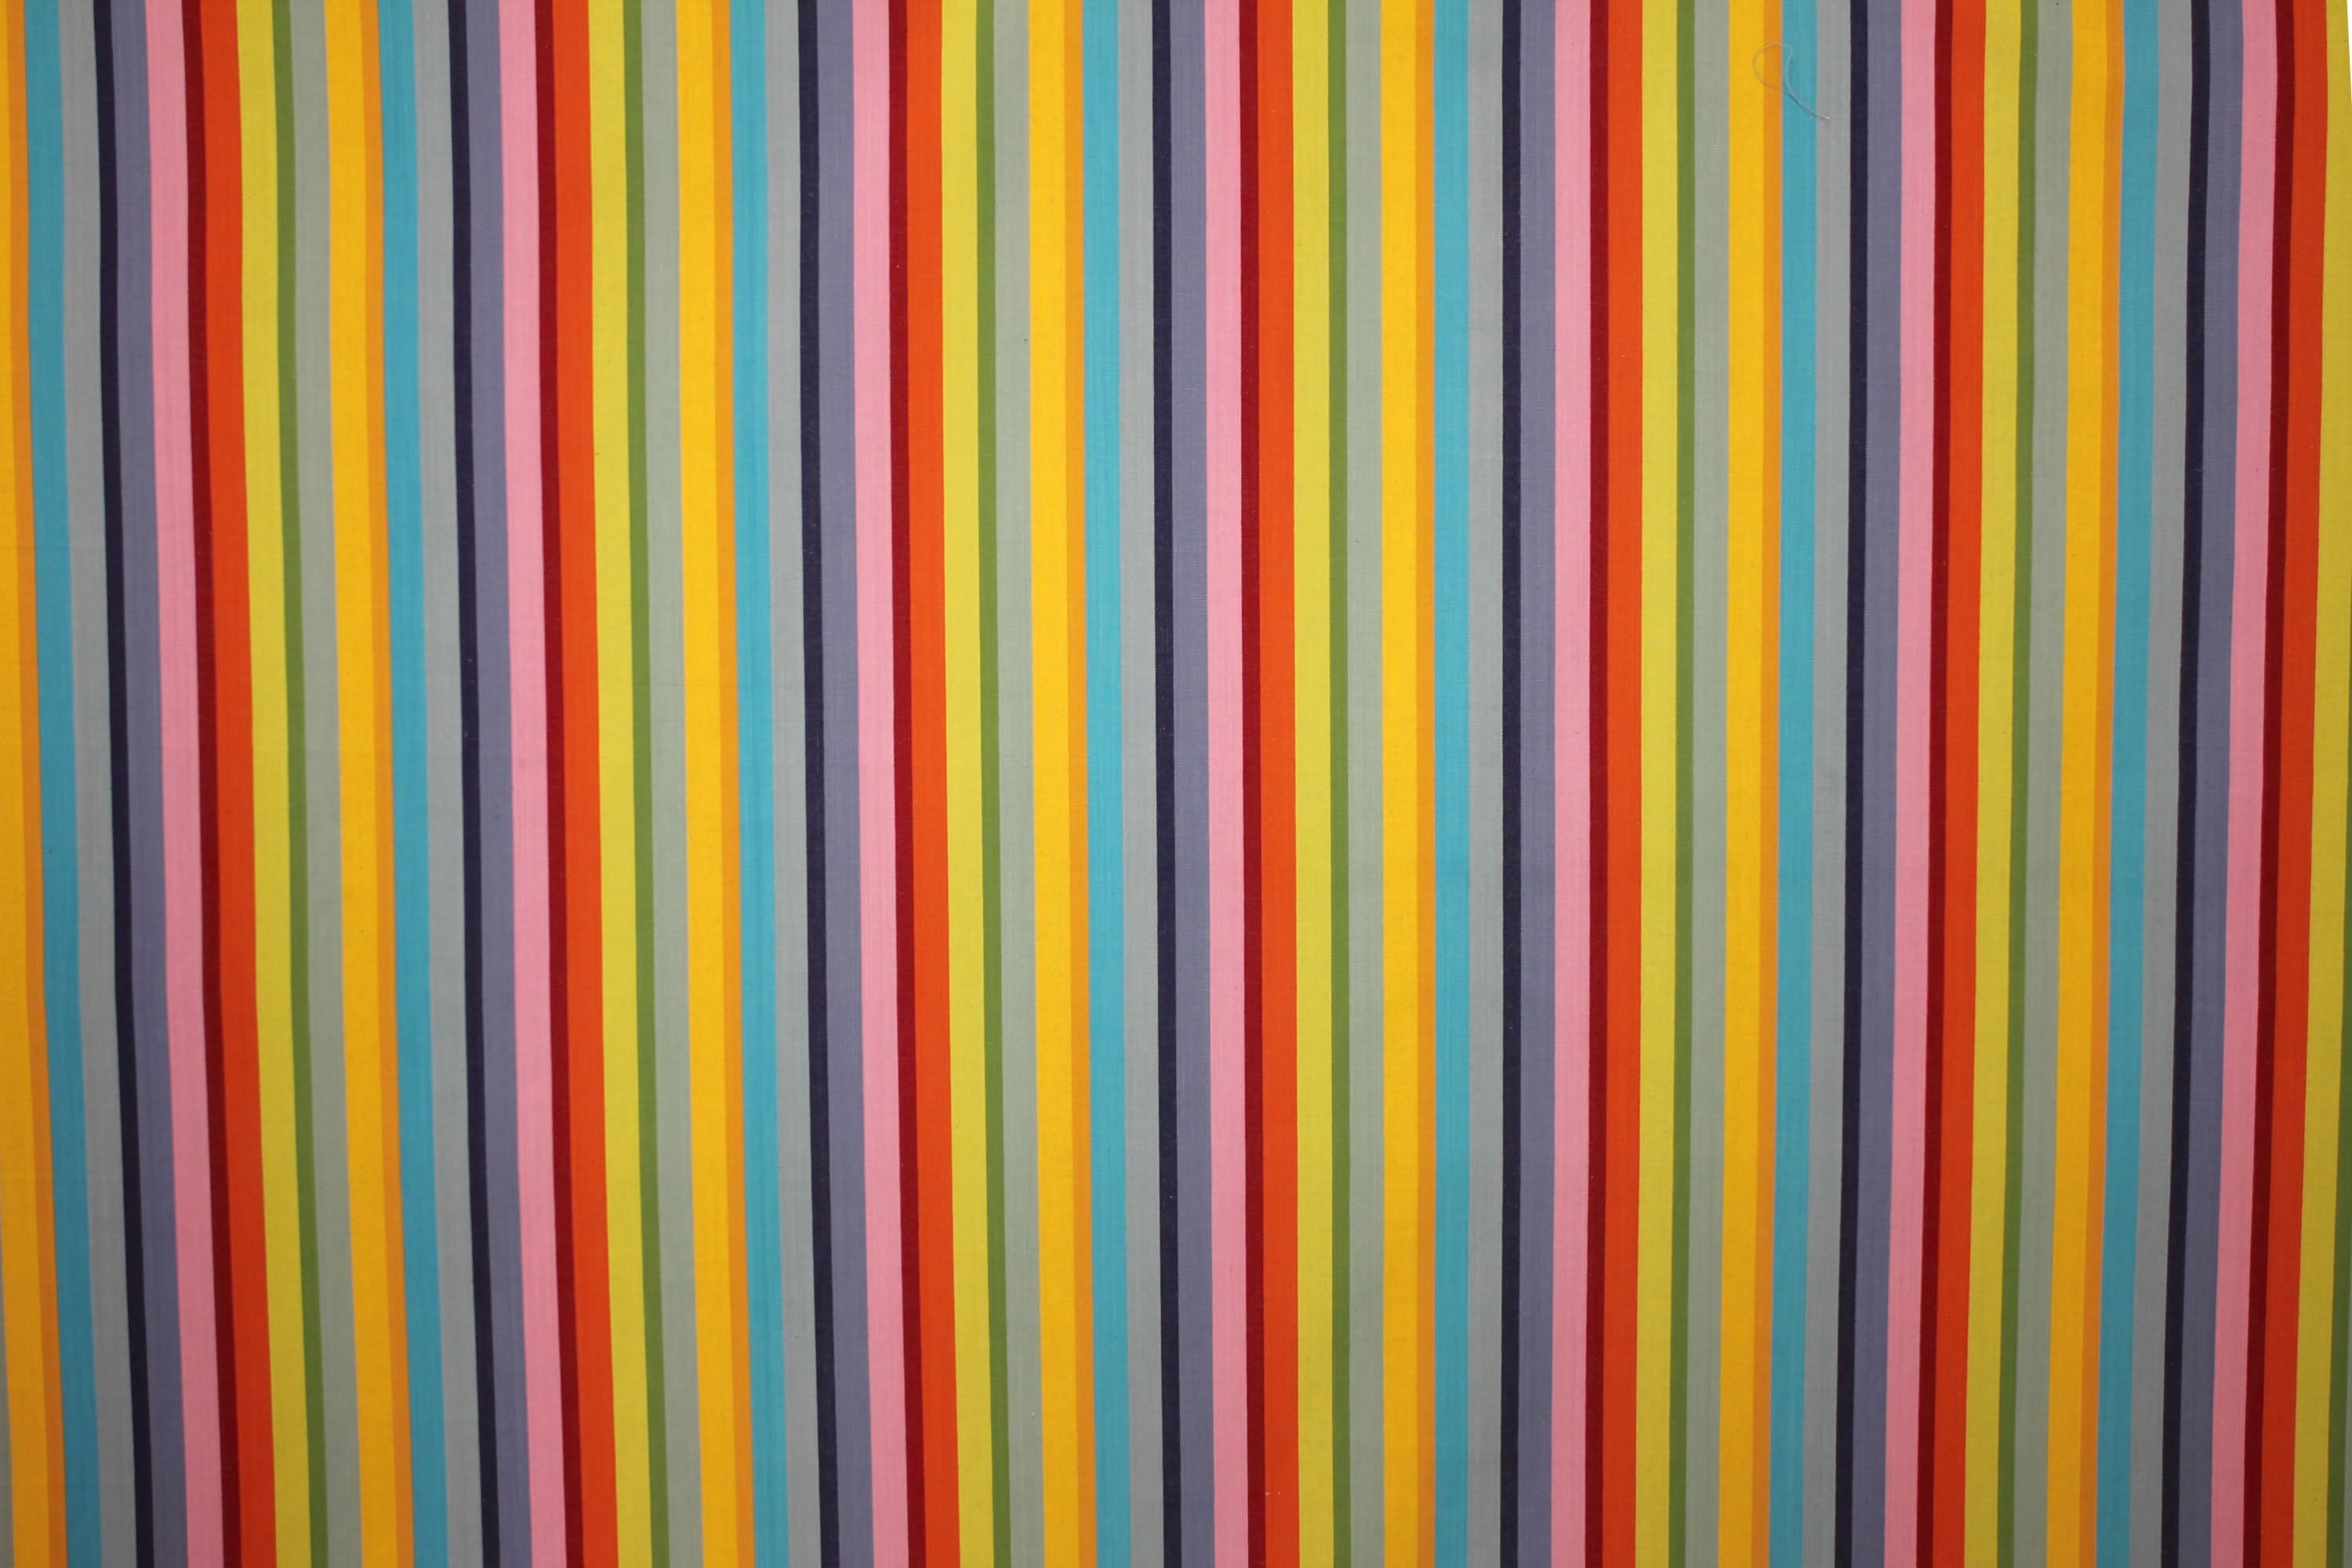 Rainbow Striped Fabrics | Stripe Cotton Fabrics | Striped Curtain Fabrics | Upholstery Fabrics  Tango Stripes